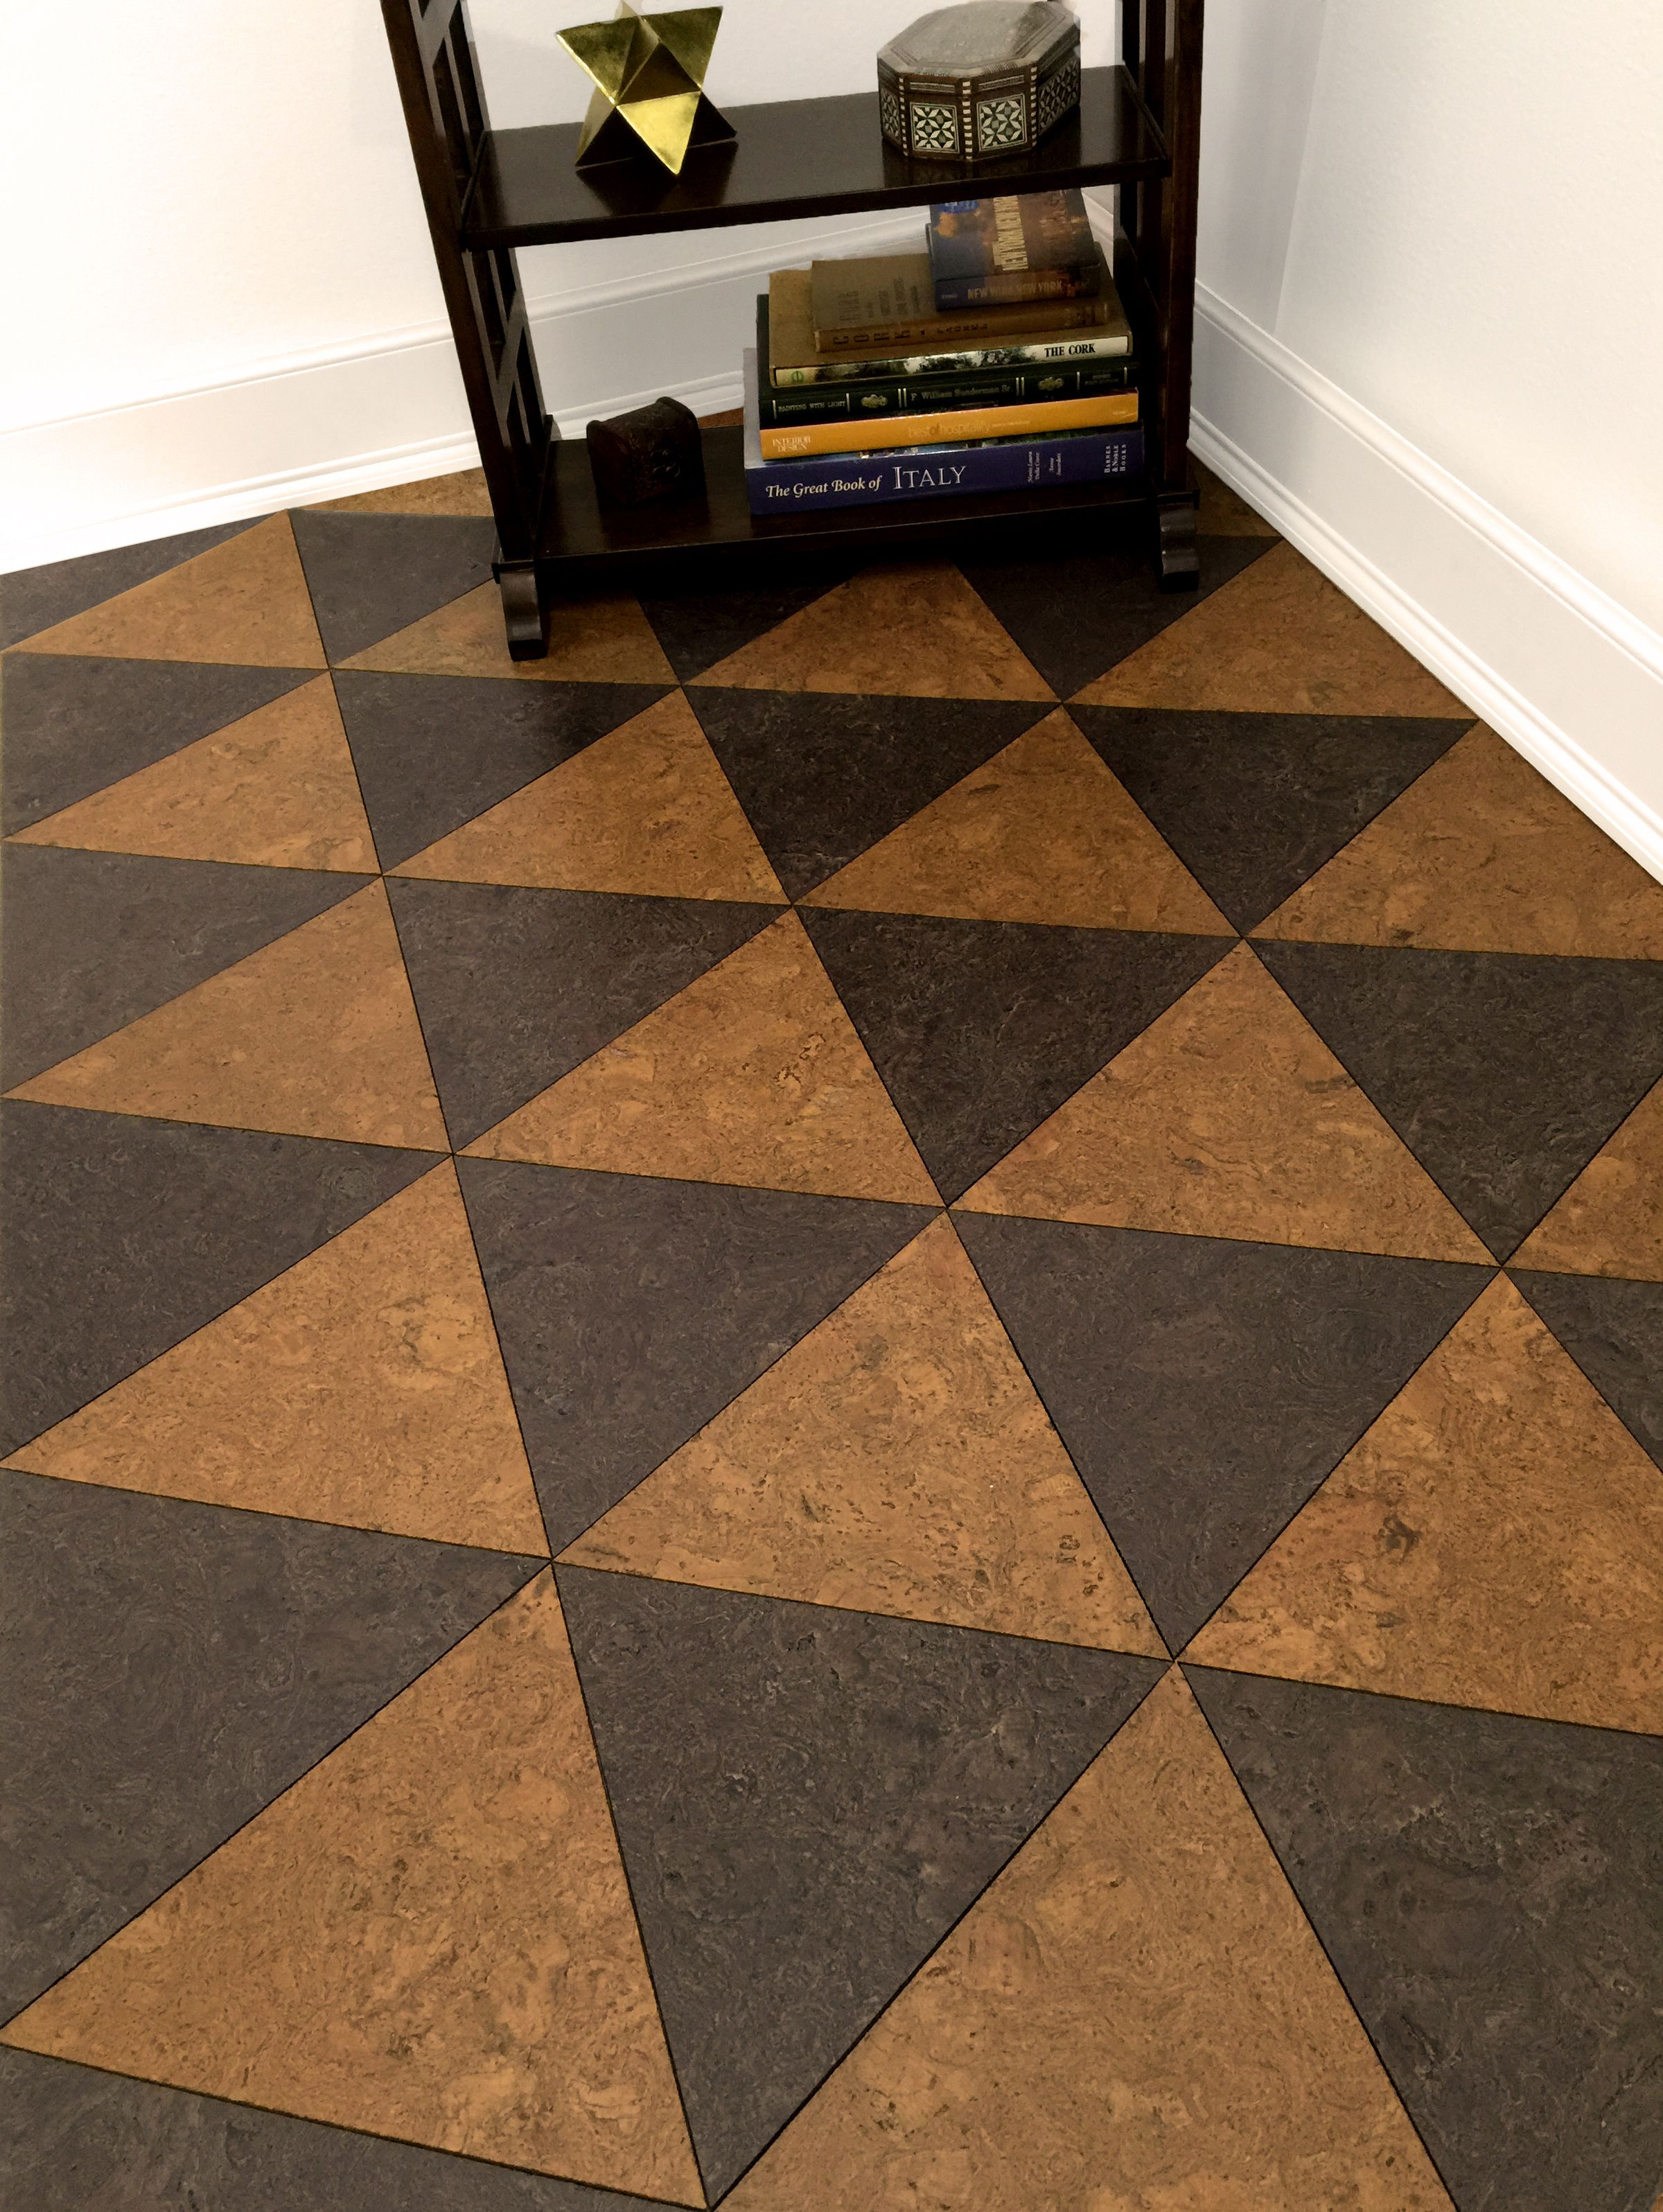 Cork Tiles for Flooring. Yes, this is a cork floor from